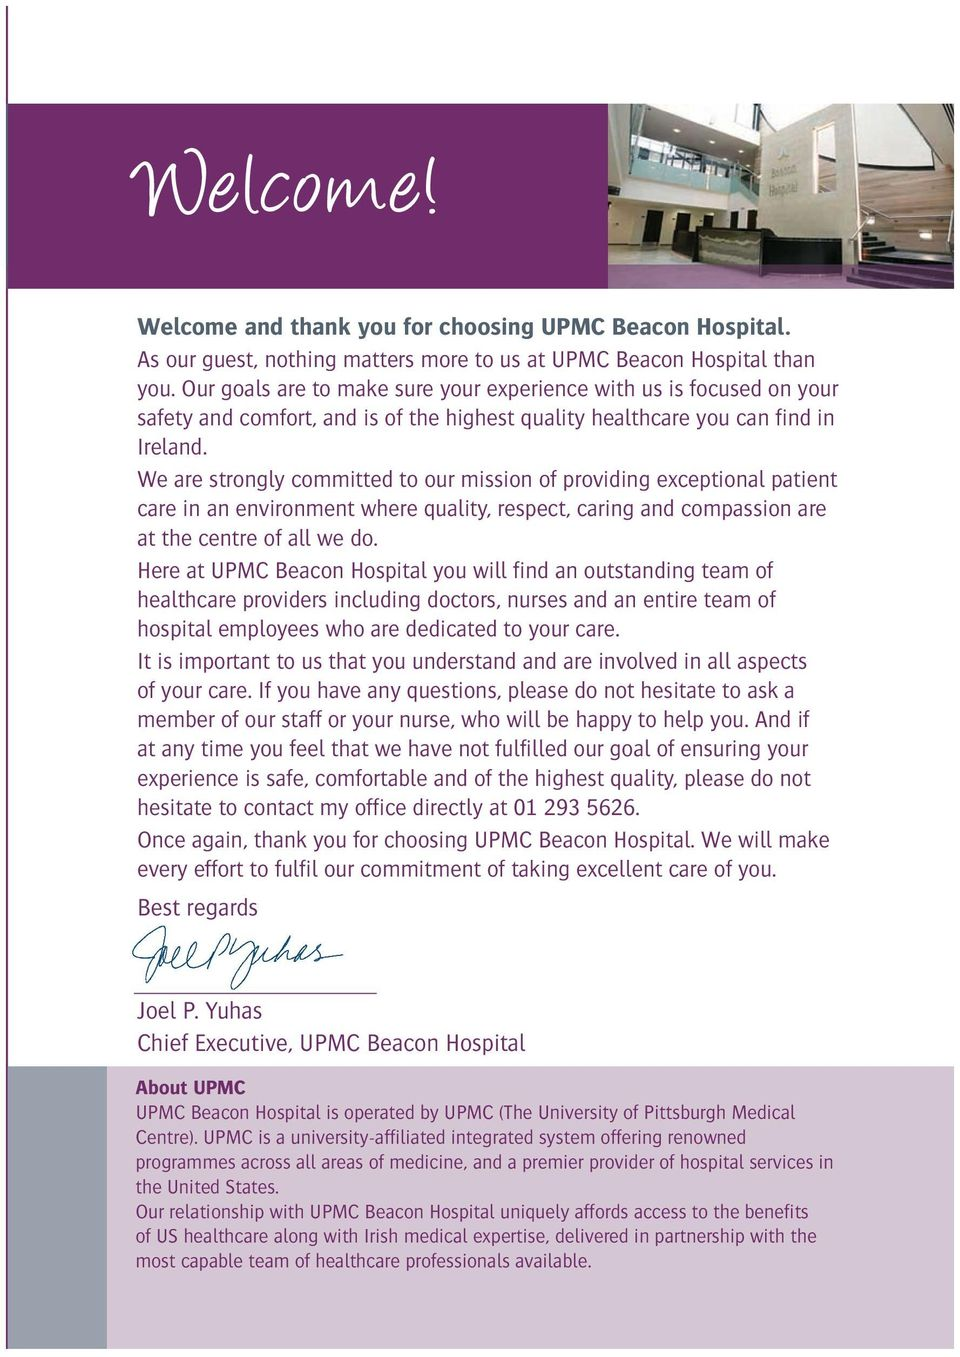 Welcome to UPMC Beacon Hospital - PDF